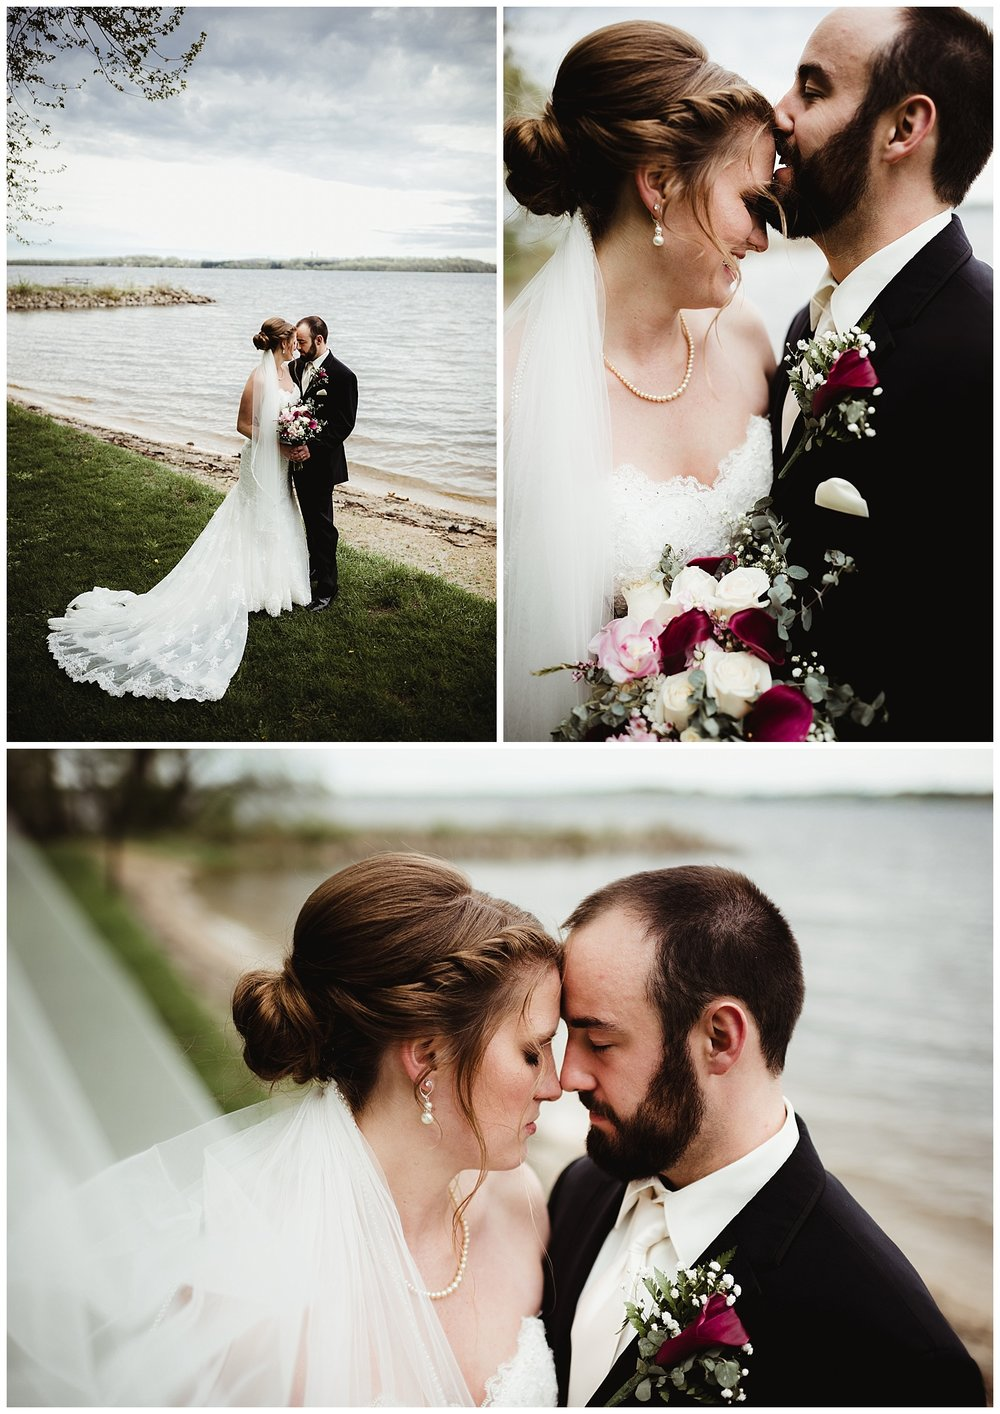 bridal portrait wisconsin wedding photographer Kayla E. Photography.jpg